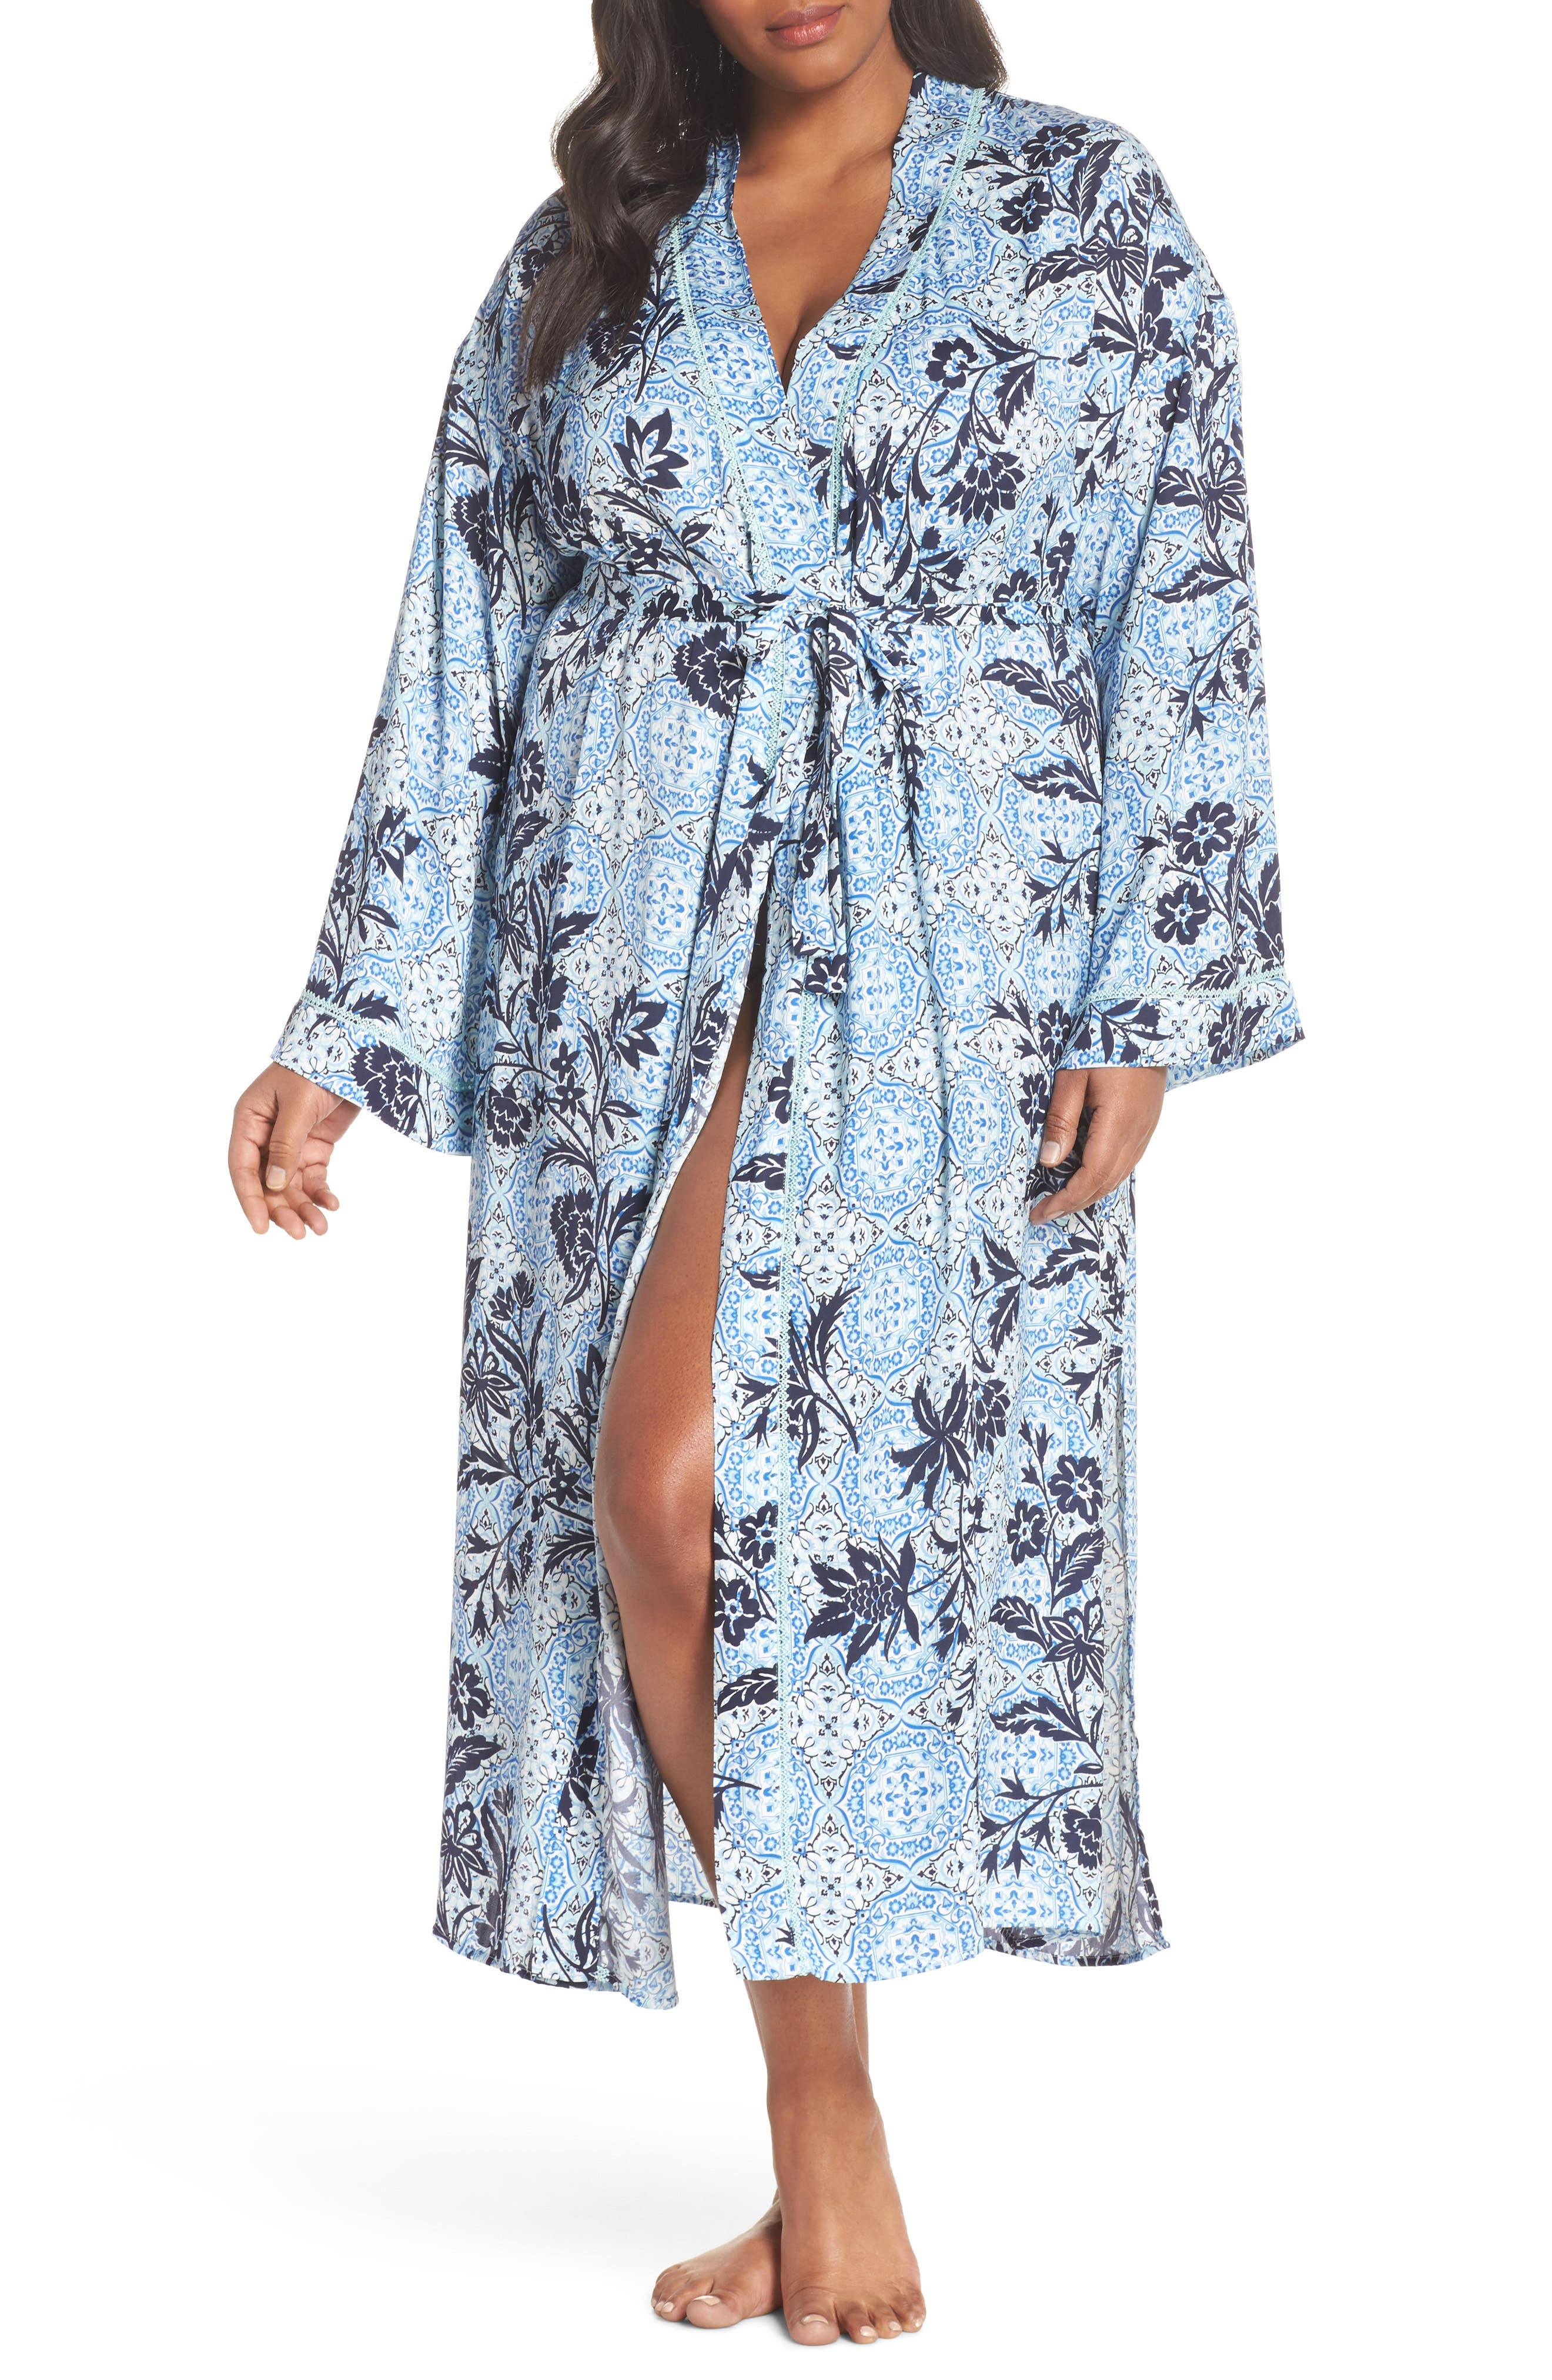 Nordstrom Lingerie Sweet Dreams Satin Robe (Plus Size)